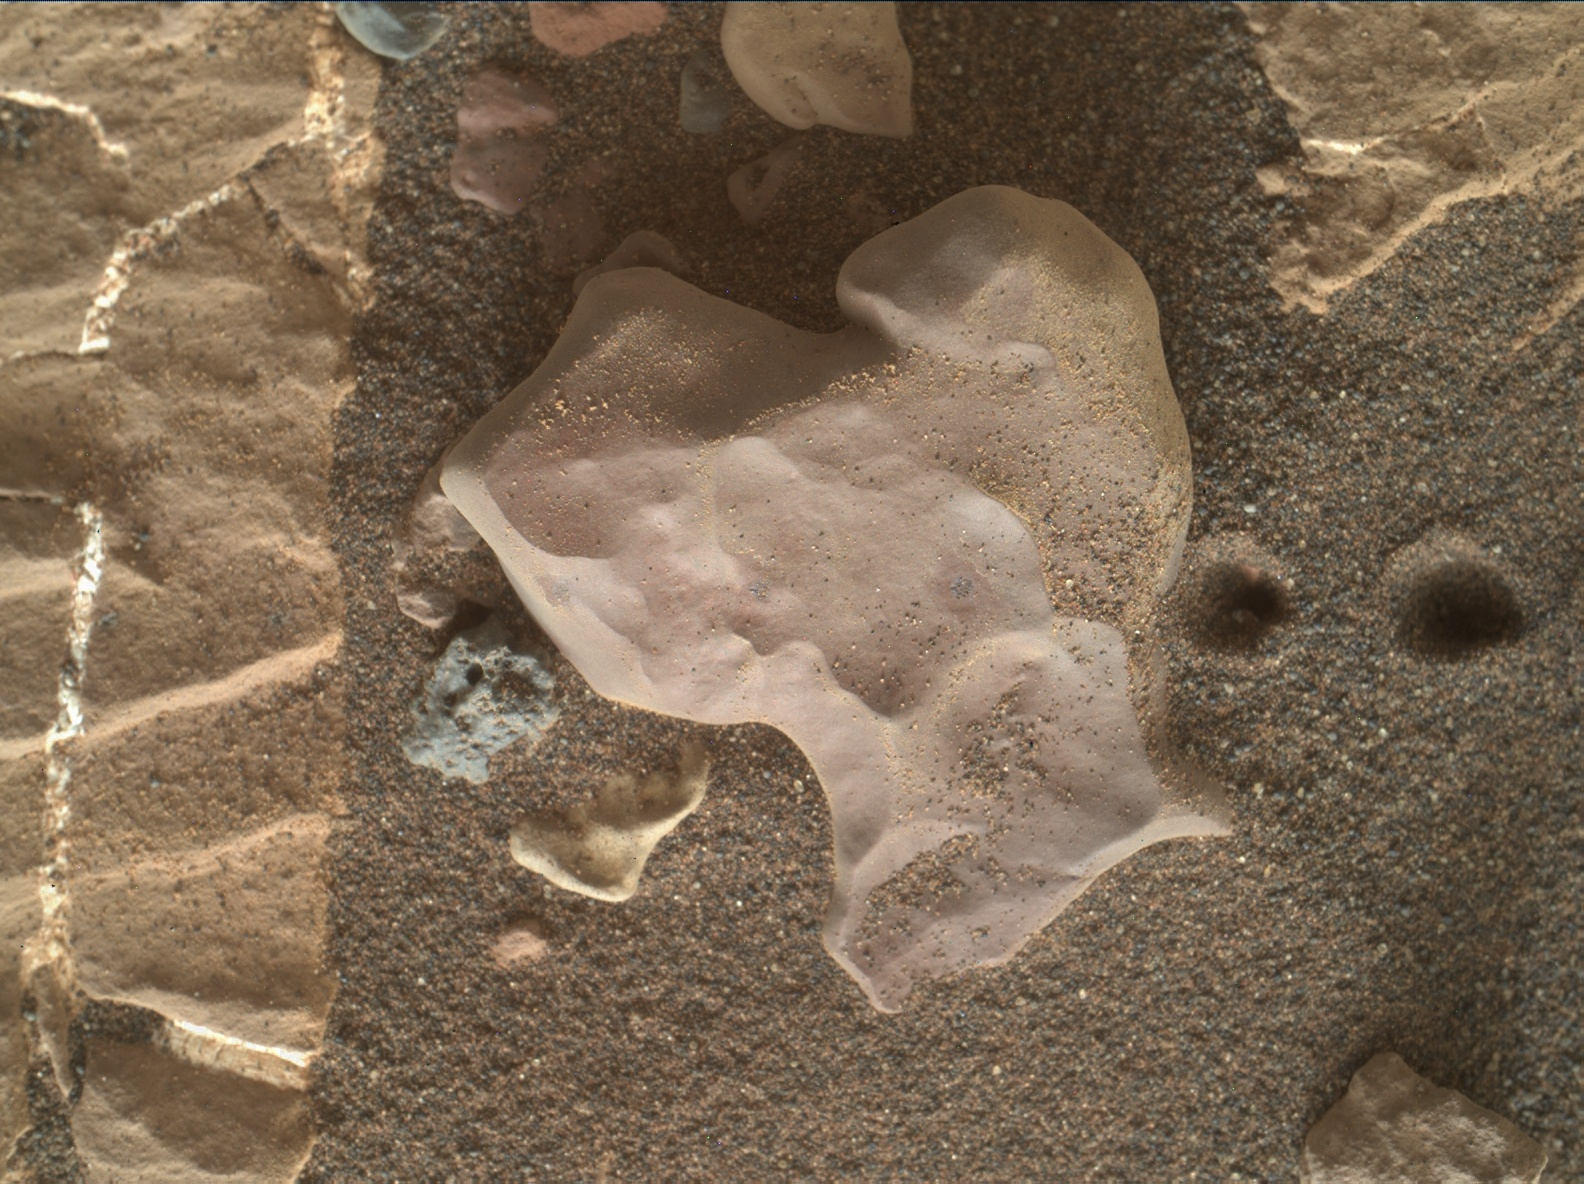 Nasa's Mars rover Curiosity acquired this image using its Mars Hand Lens Imager (MAHLI) on Sol 2013